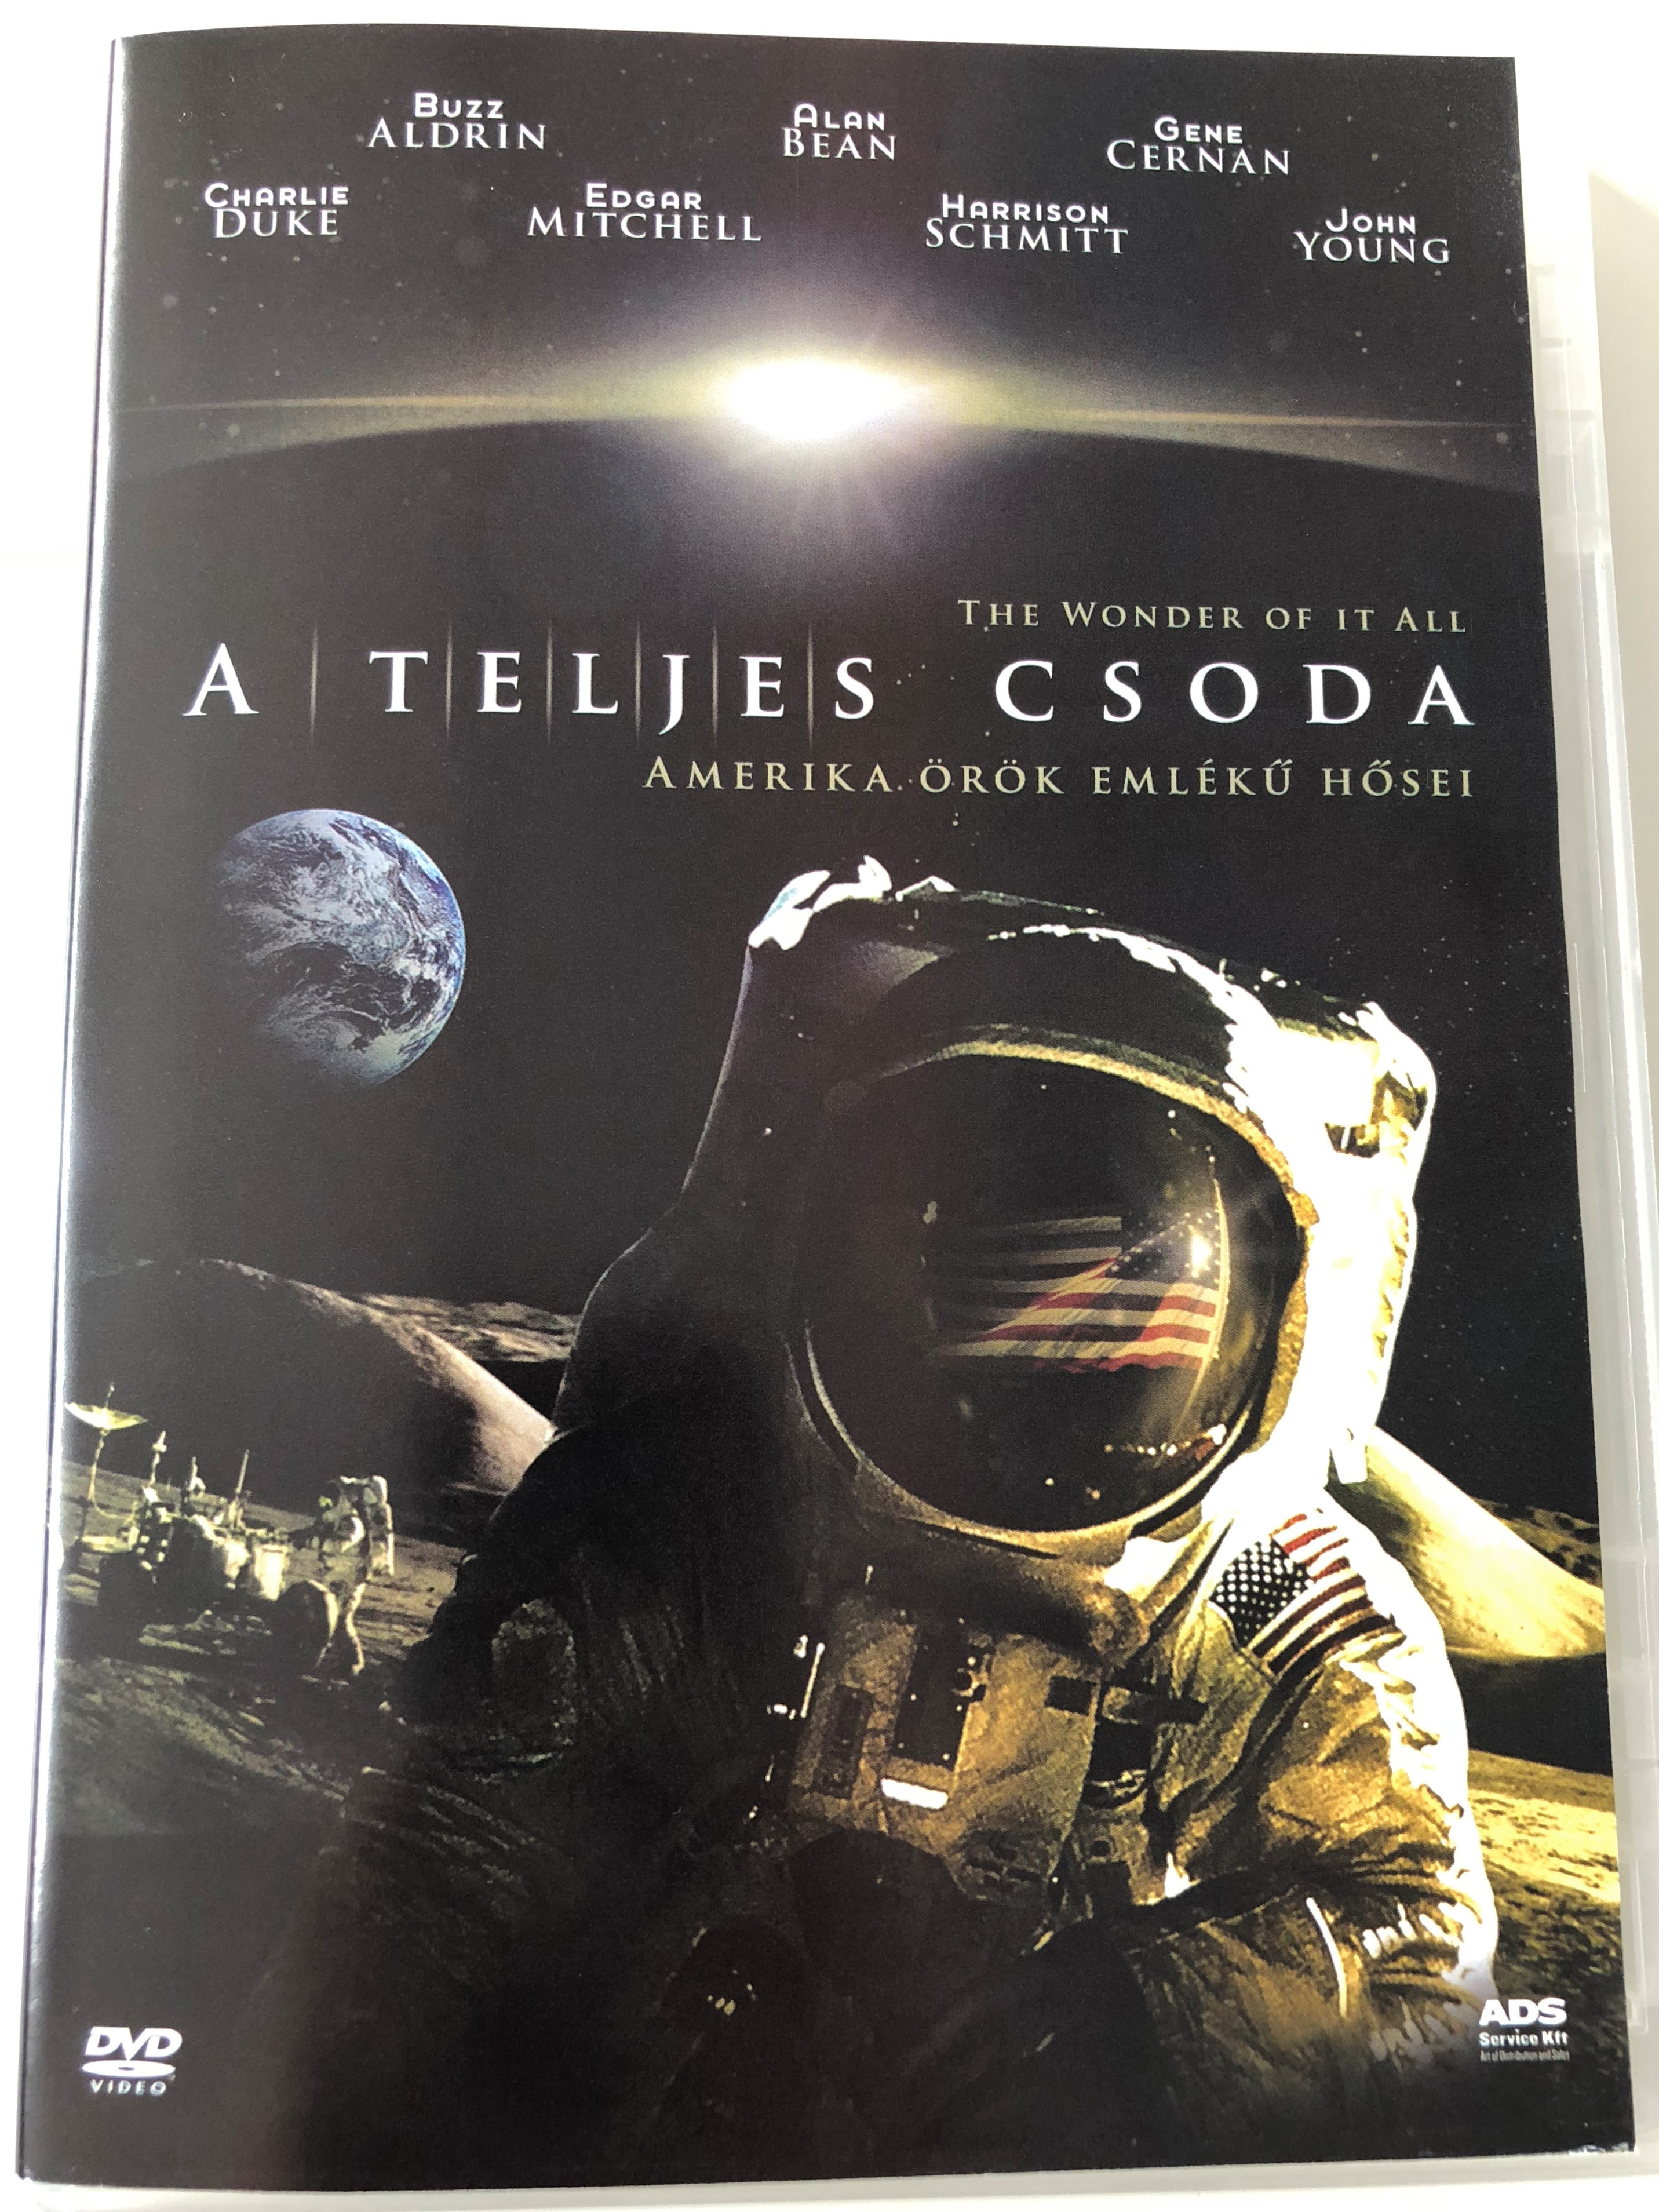 the-wonder-of-it-all-dvd-2007-a-teljes-csoda-directed-by-jeffrey-roth-documentary-interviews-with-7-of-the-12-apollo-astronauts-who-walked-on-the-moon-1-.jpg